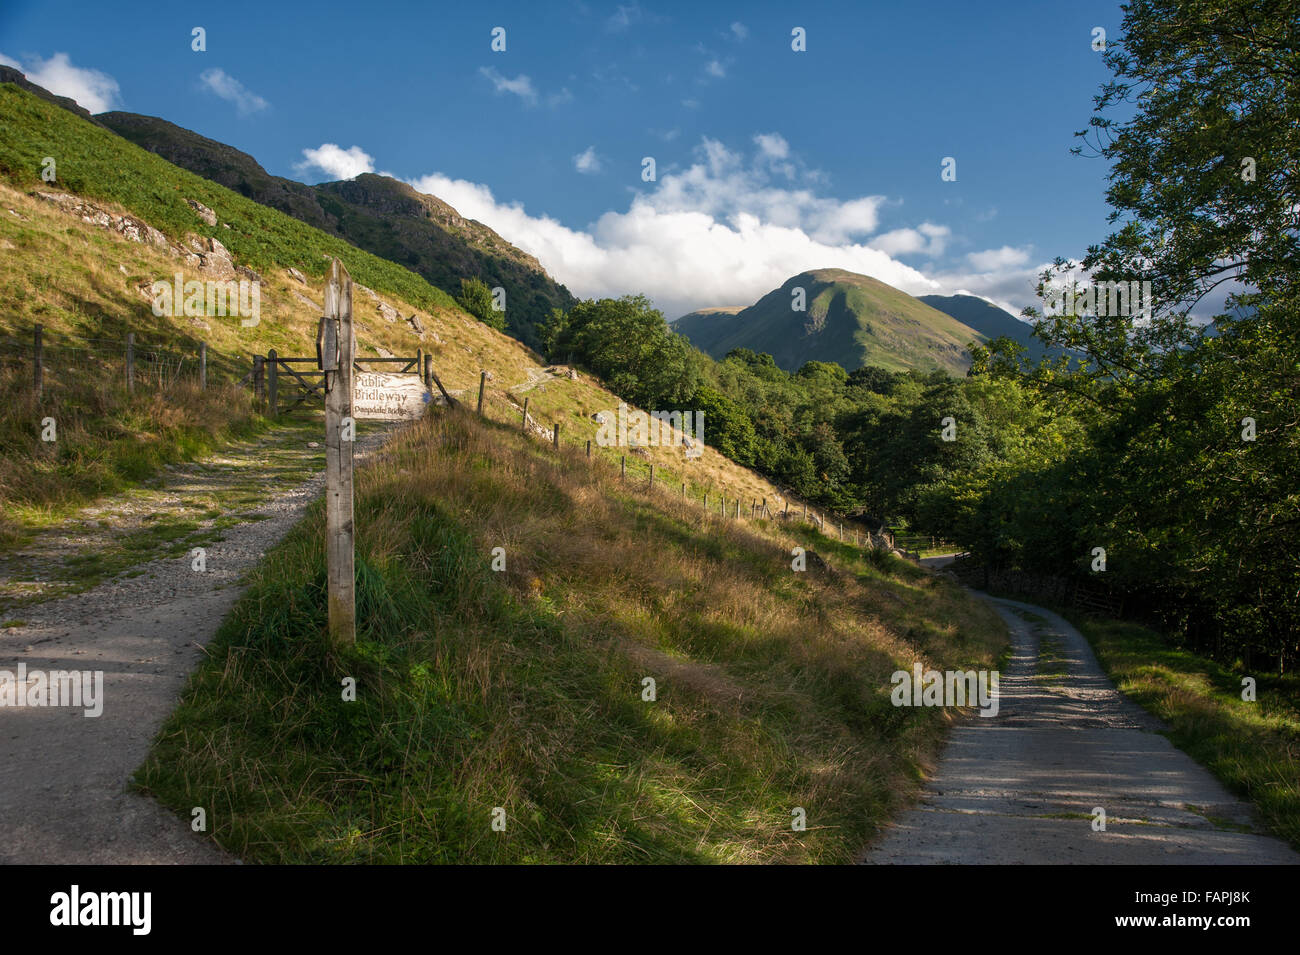 The Patterdale to Hartsop footpath in Cumbria - Stock Image